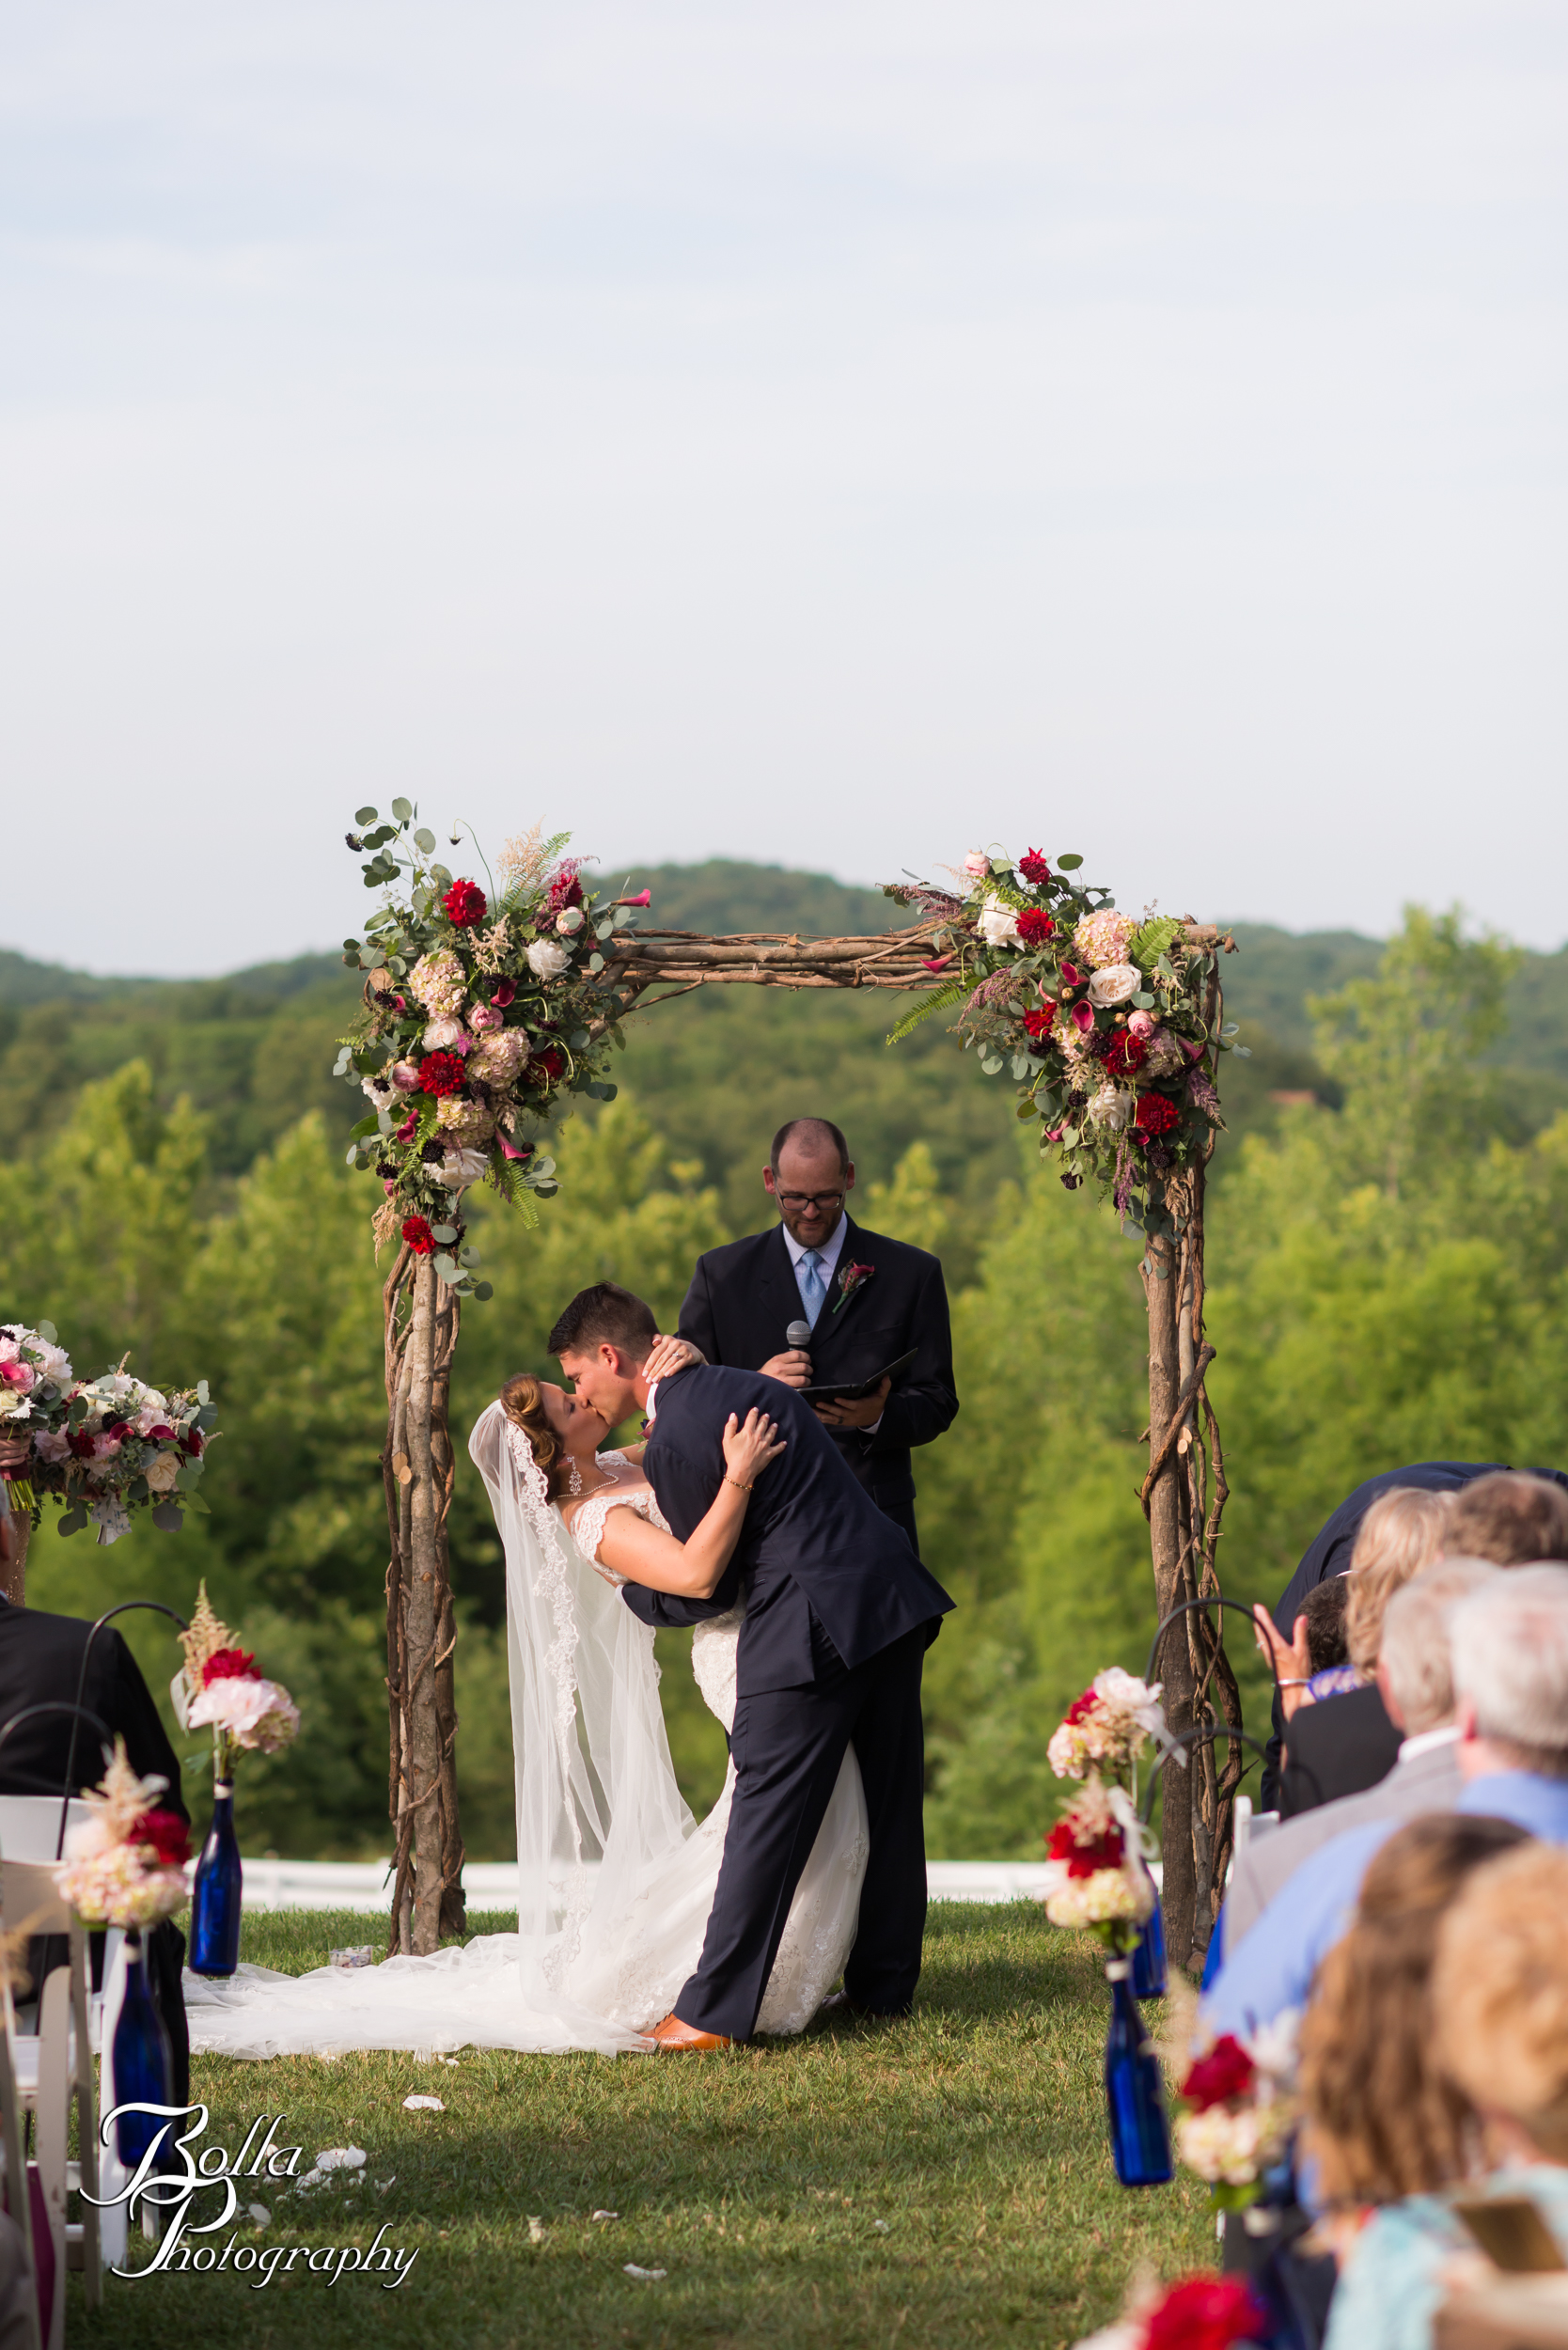 Bolla_photography_edwardsville_wedding_photographer_st_louis_weddings_Chaumette_winery_Mikusch-0415.jpg